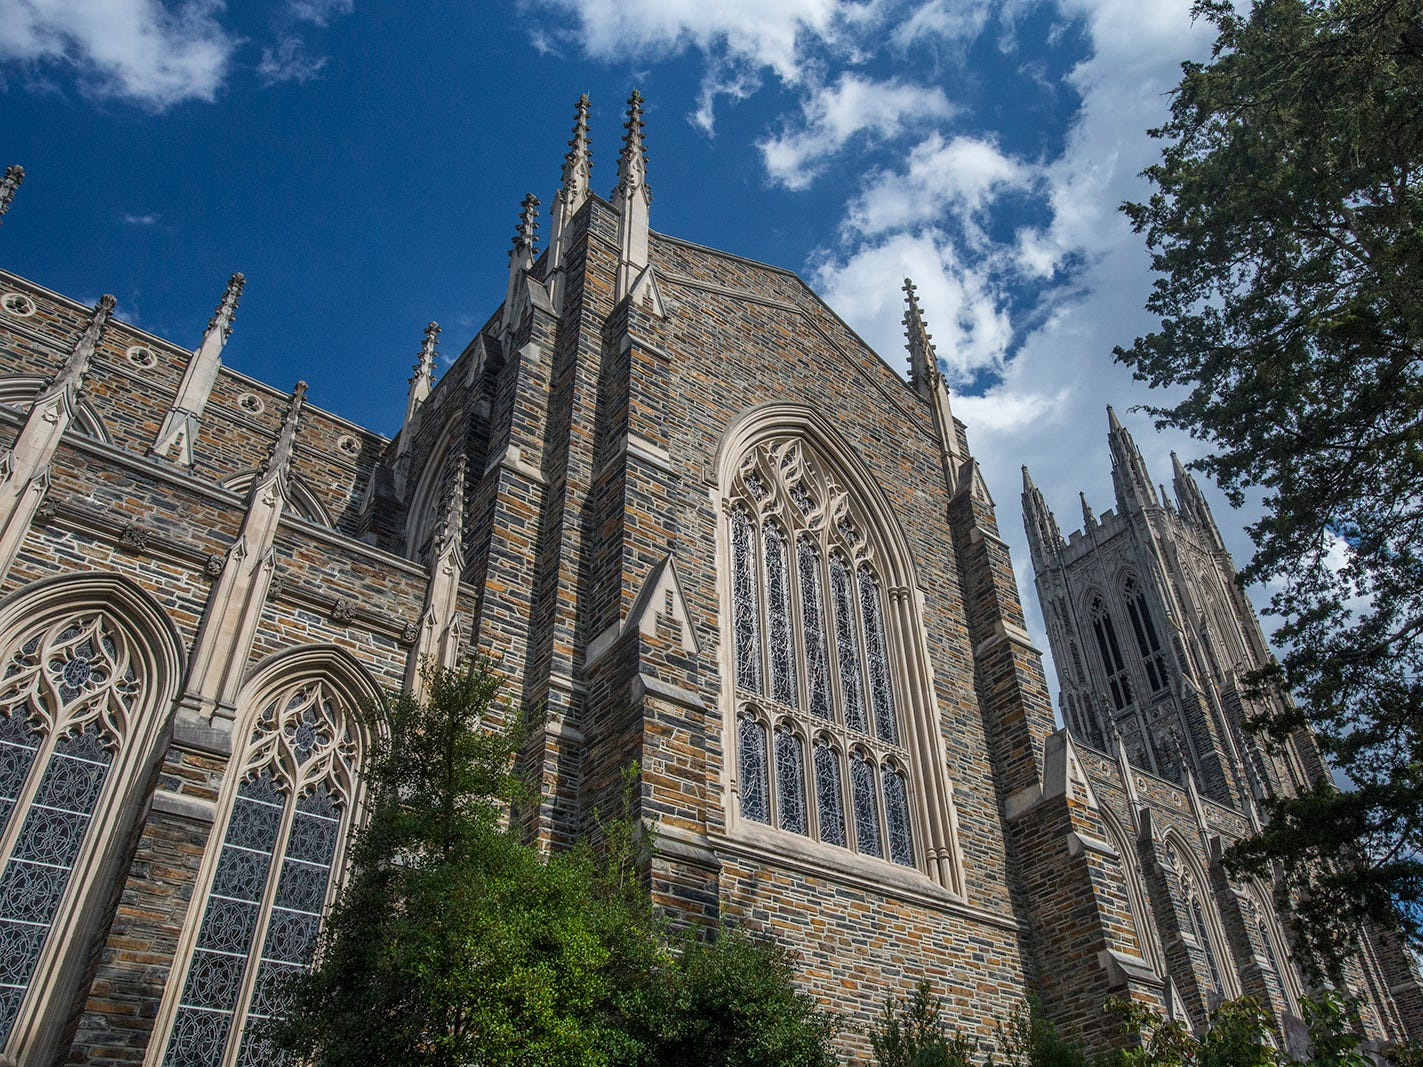 North Carolina: Duke University Chapel, with a tower that rises 210 feet, is built of multihued stones from a nearby quarry. Designed by Julian Abele and dedicated in 1935, the chapel represents last great collegiate Gothic projects in the United States.